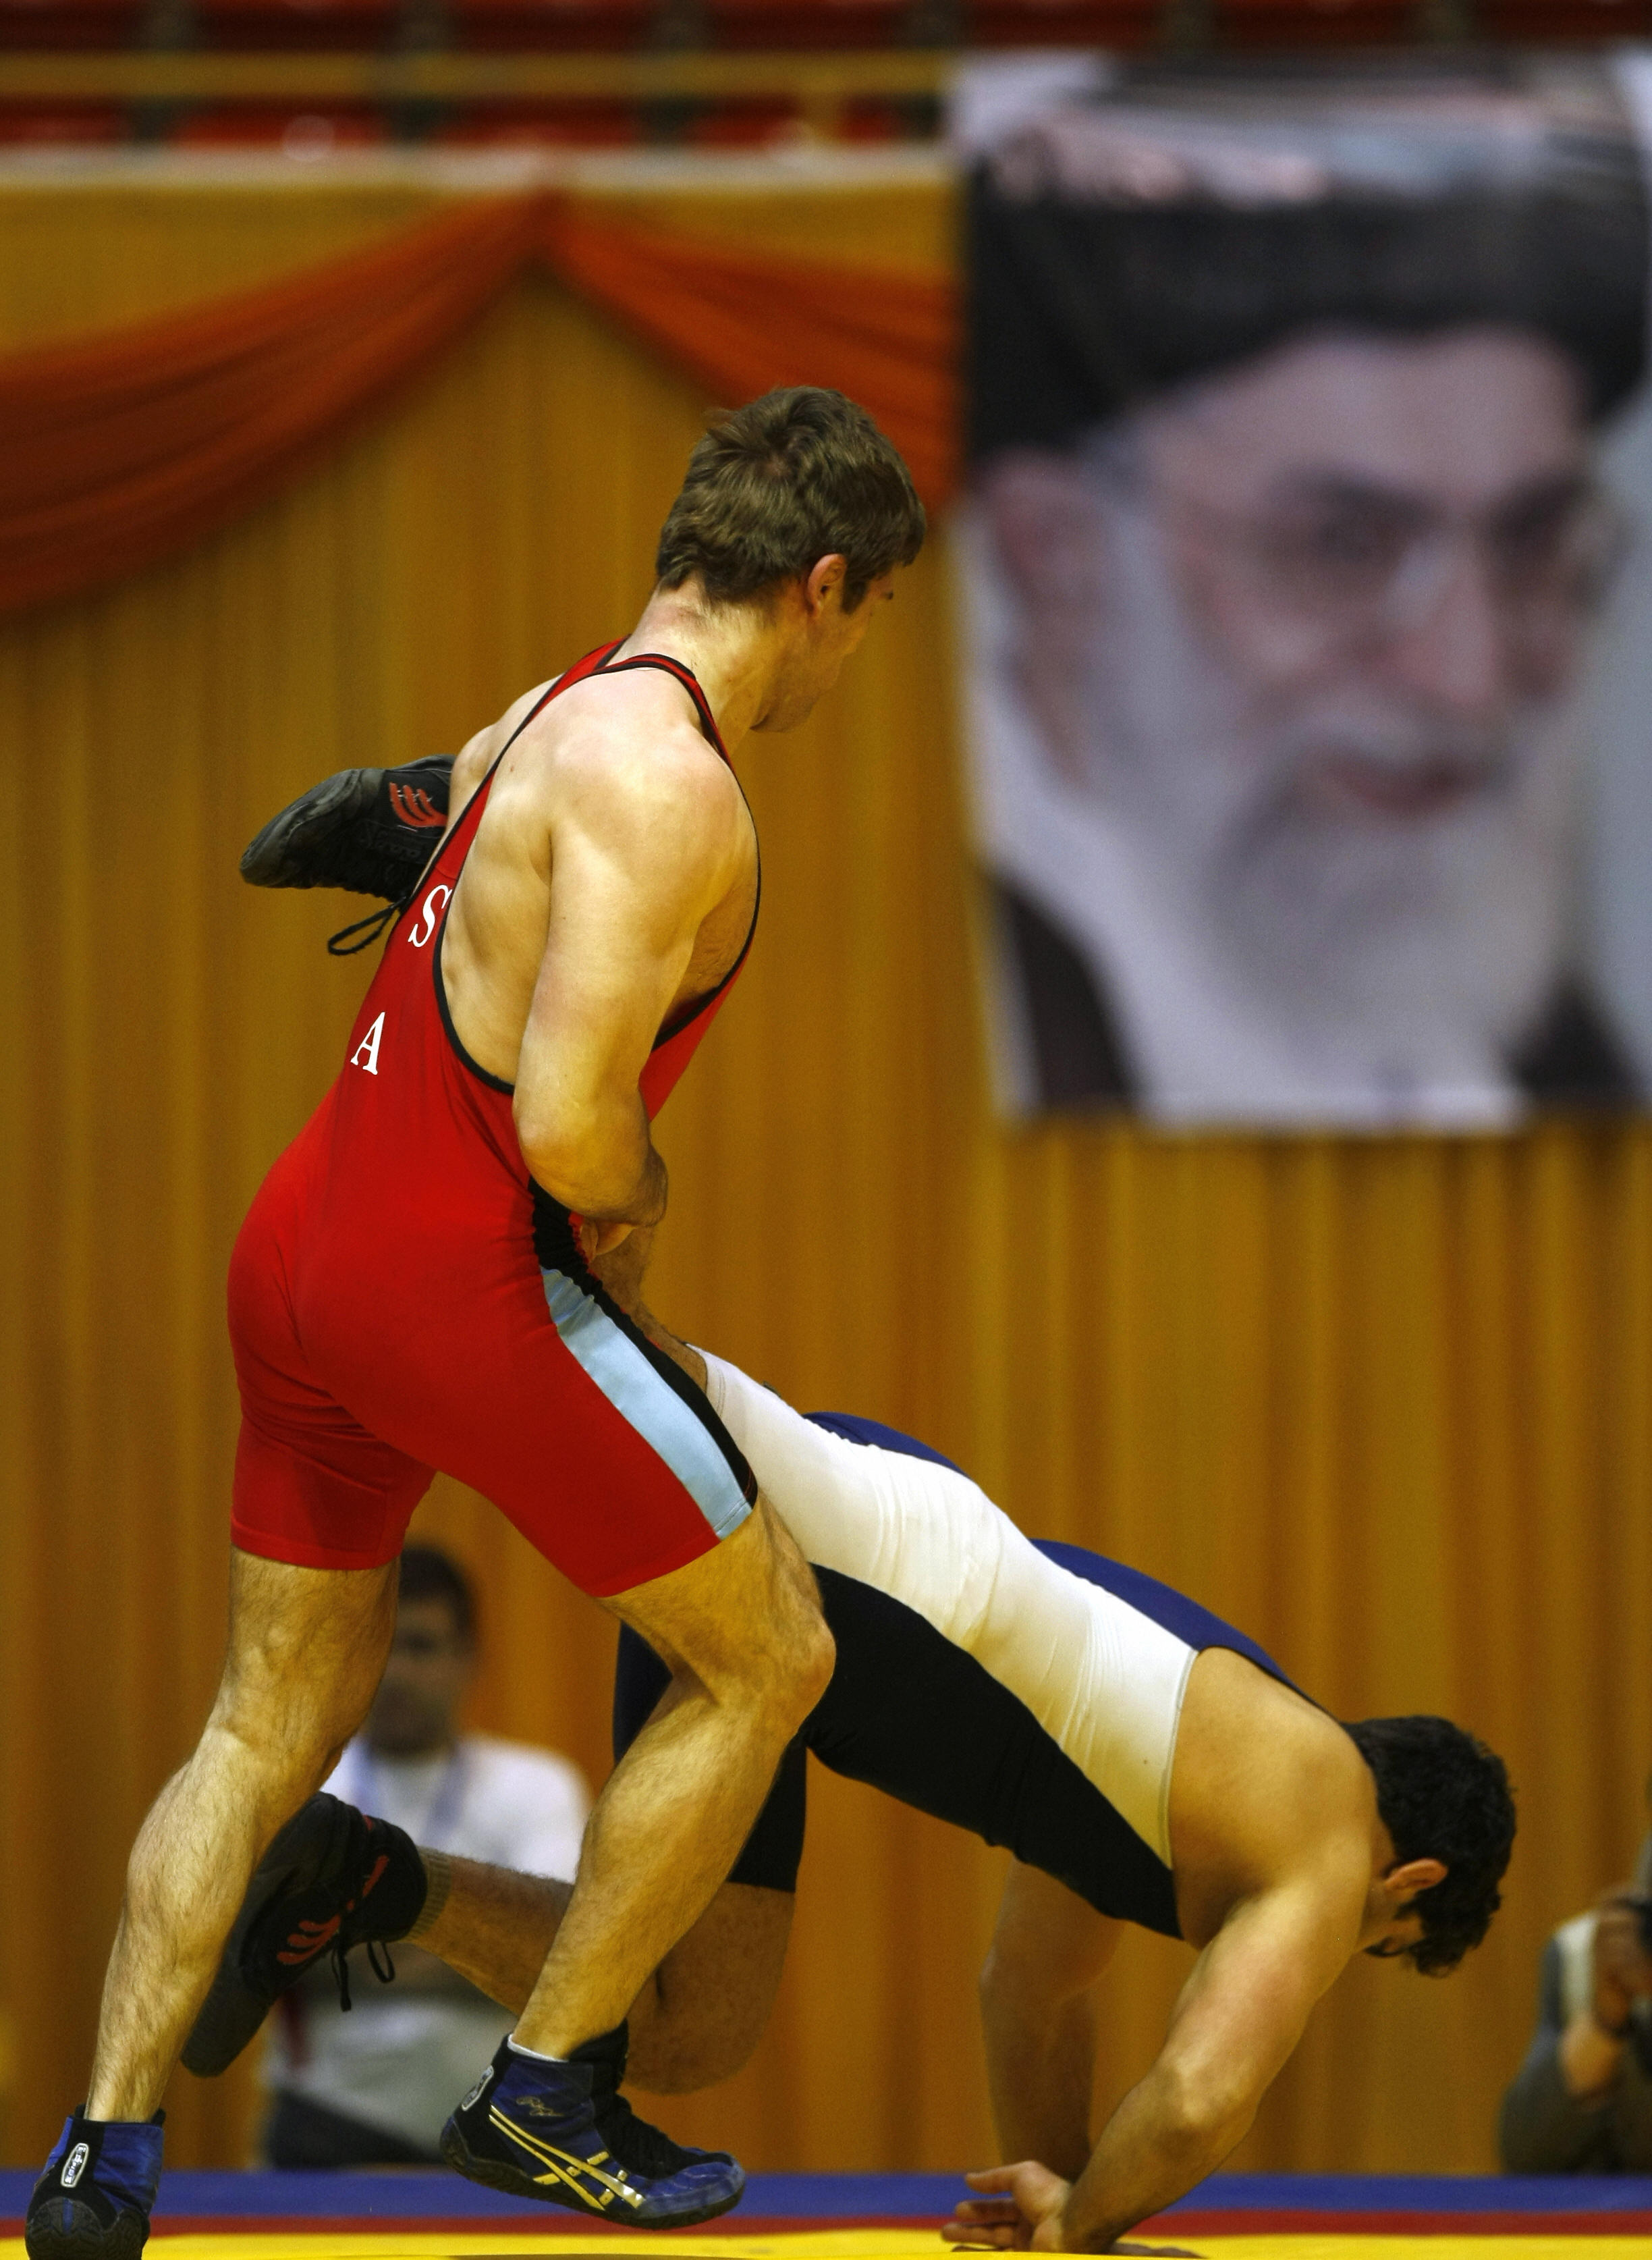 Inside the Middle East: Blog Archive - The Day in Pictures ...wrestling bulges